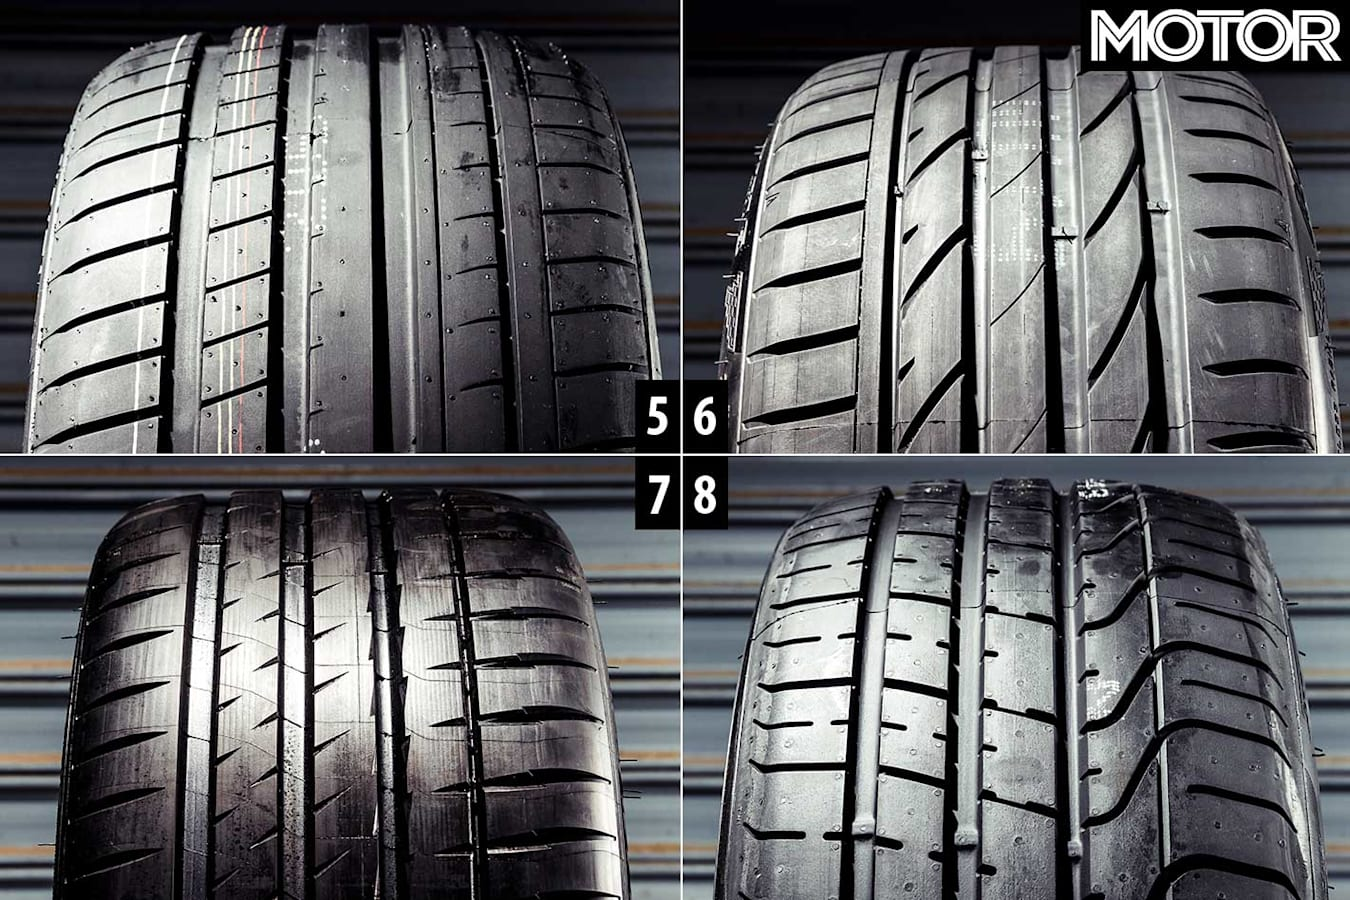 MOTOR-Tyre-Test-2019-Competitior-Group-2